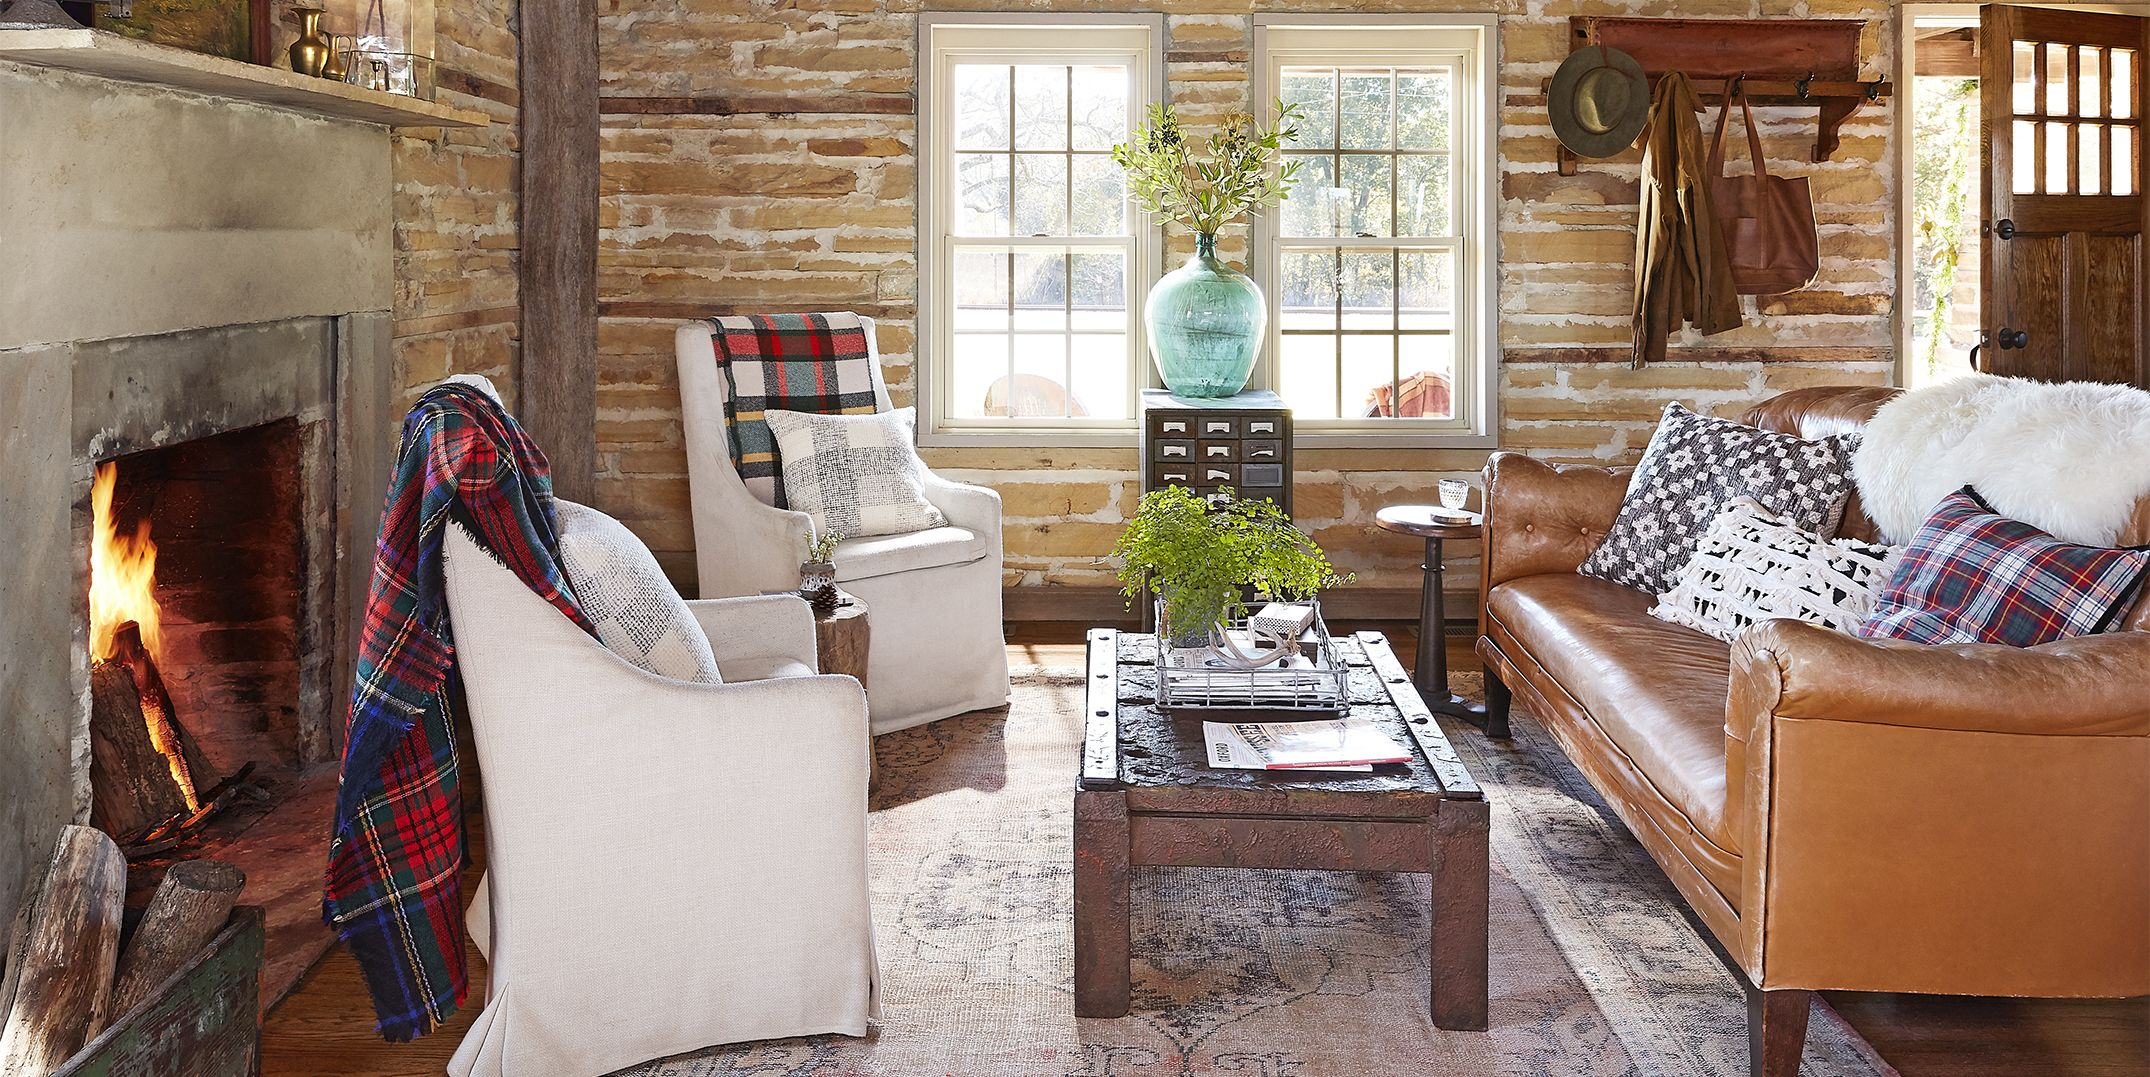 Here's What Happens When Two Brothers Overhaul a Fixer Upper for Their Families